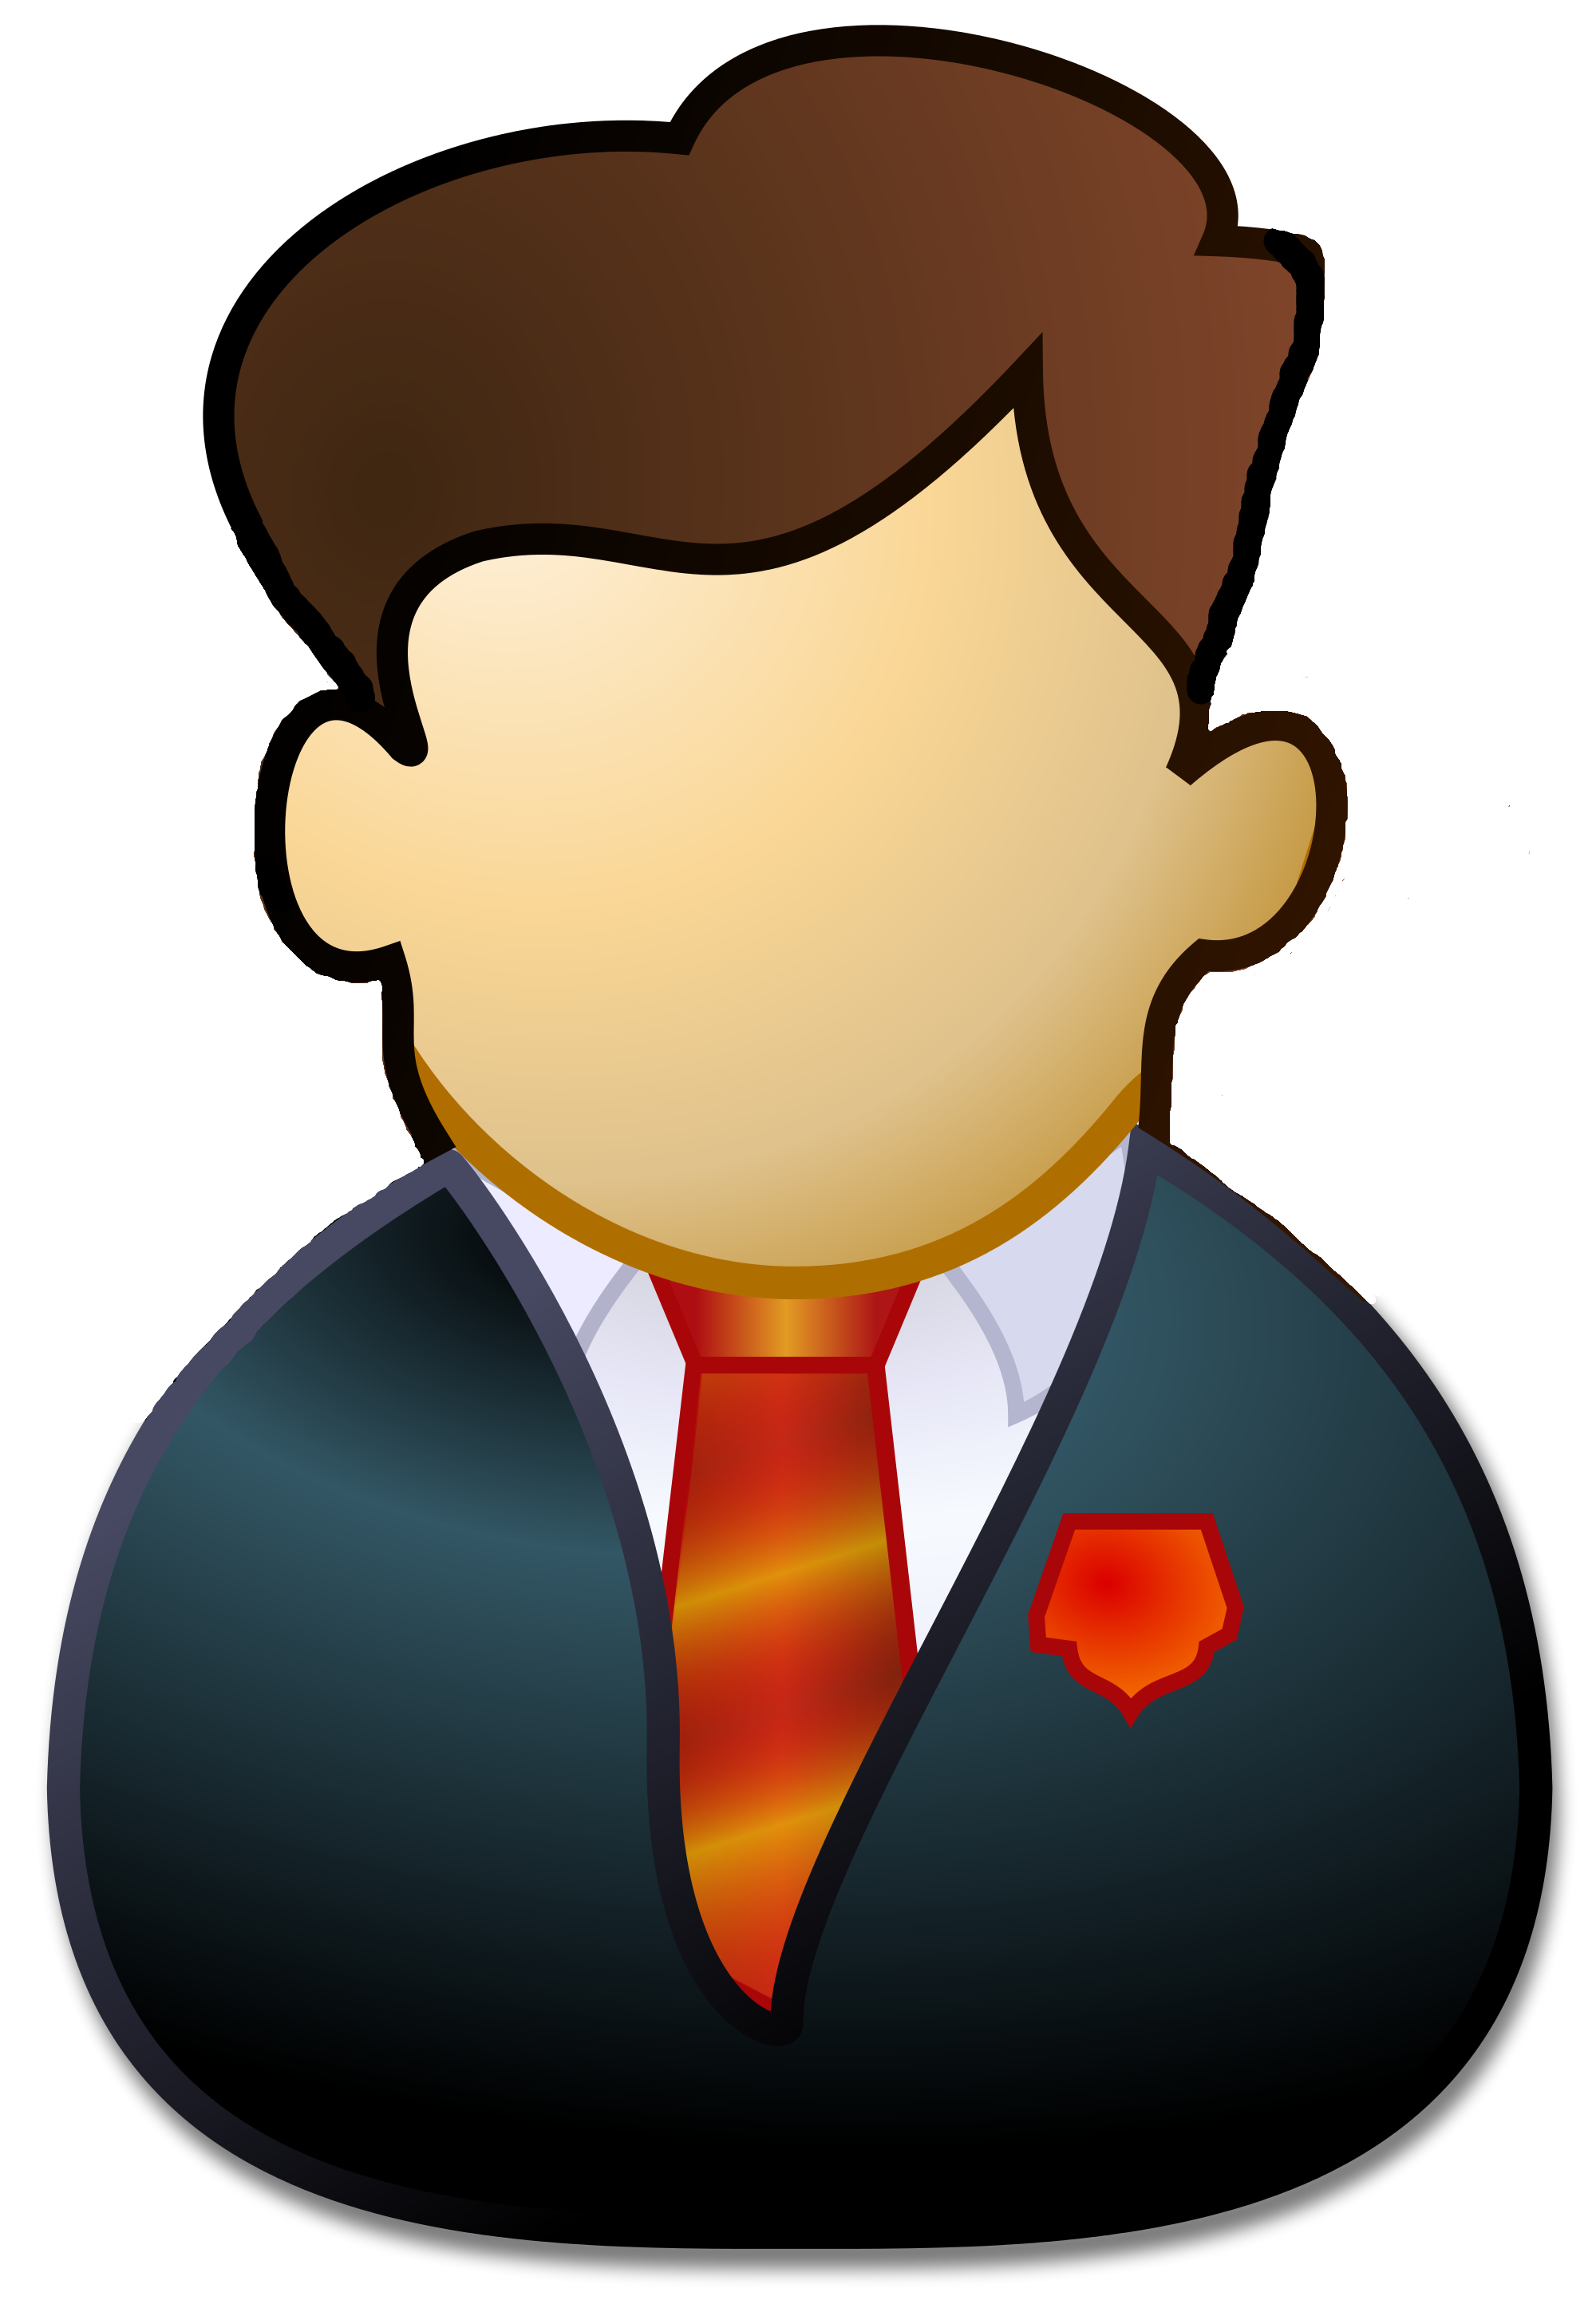 Politician Png - People Politician.png - Clip Art Library